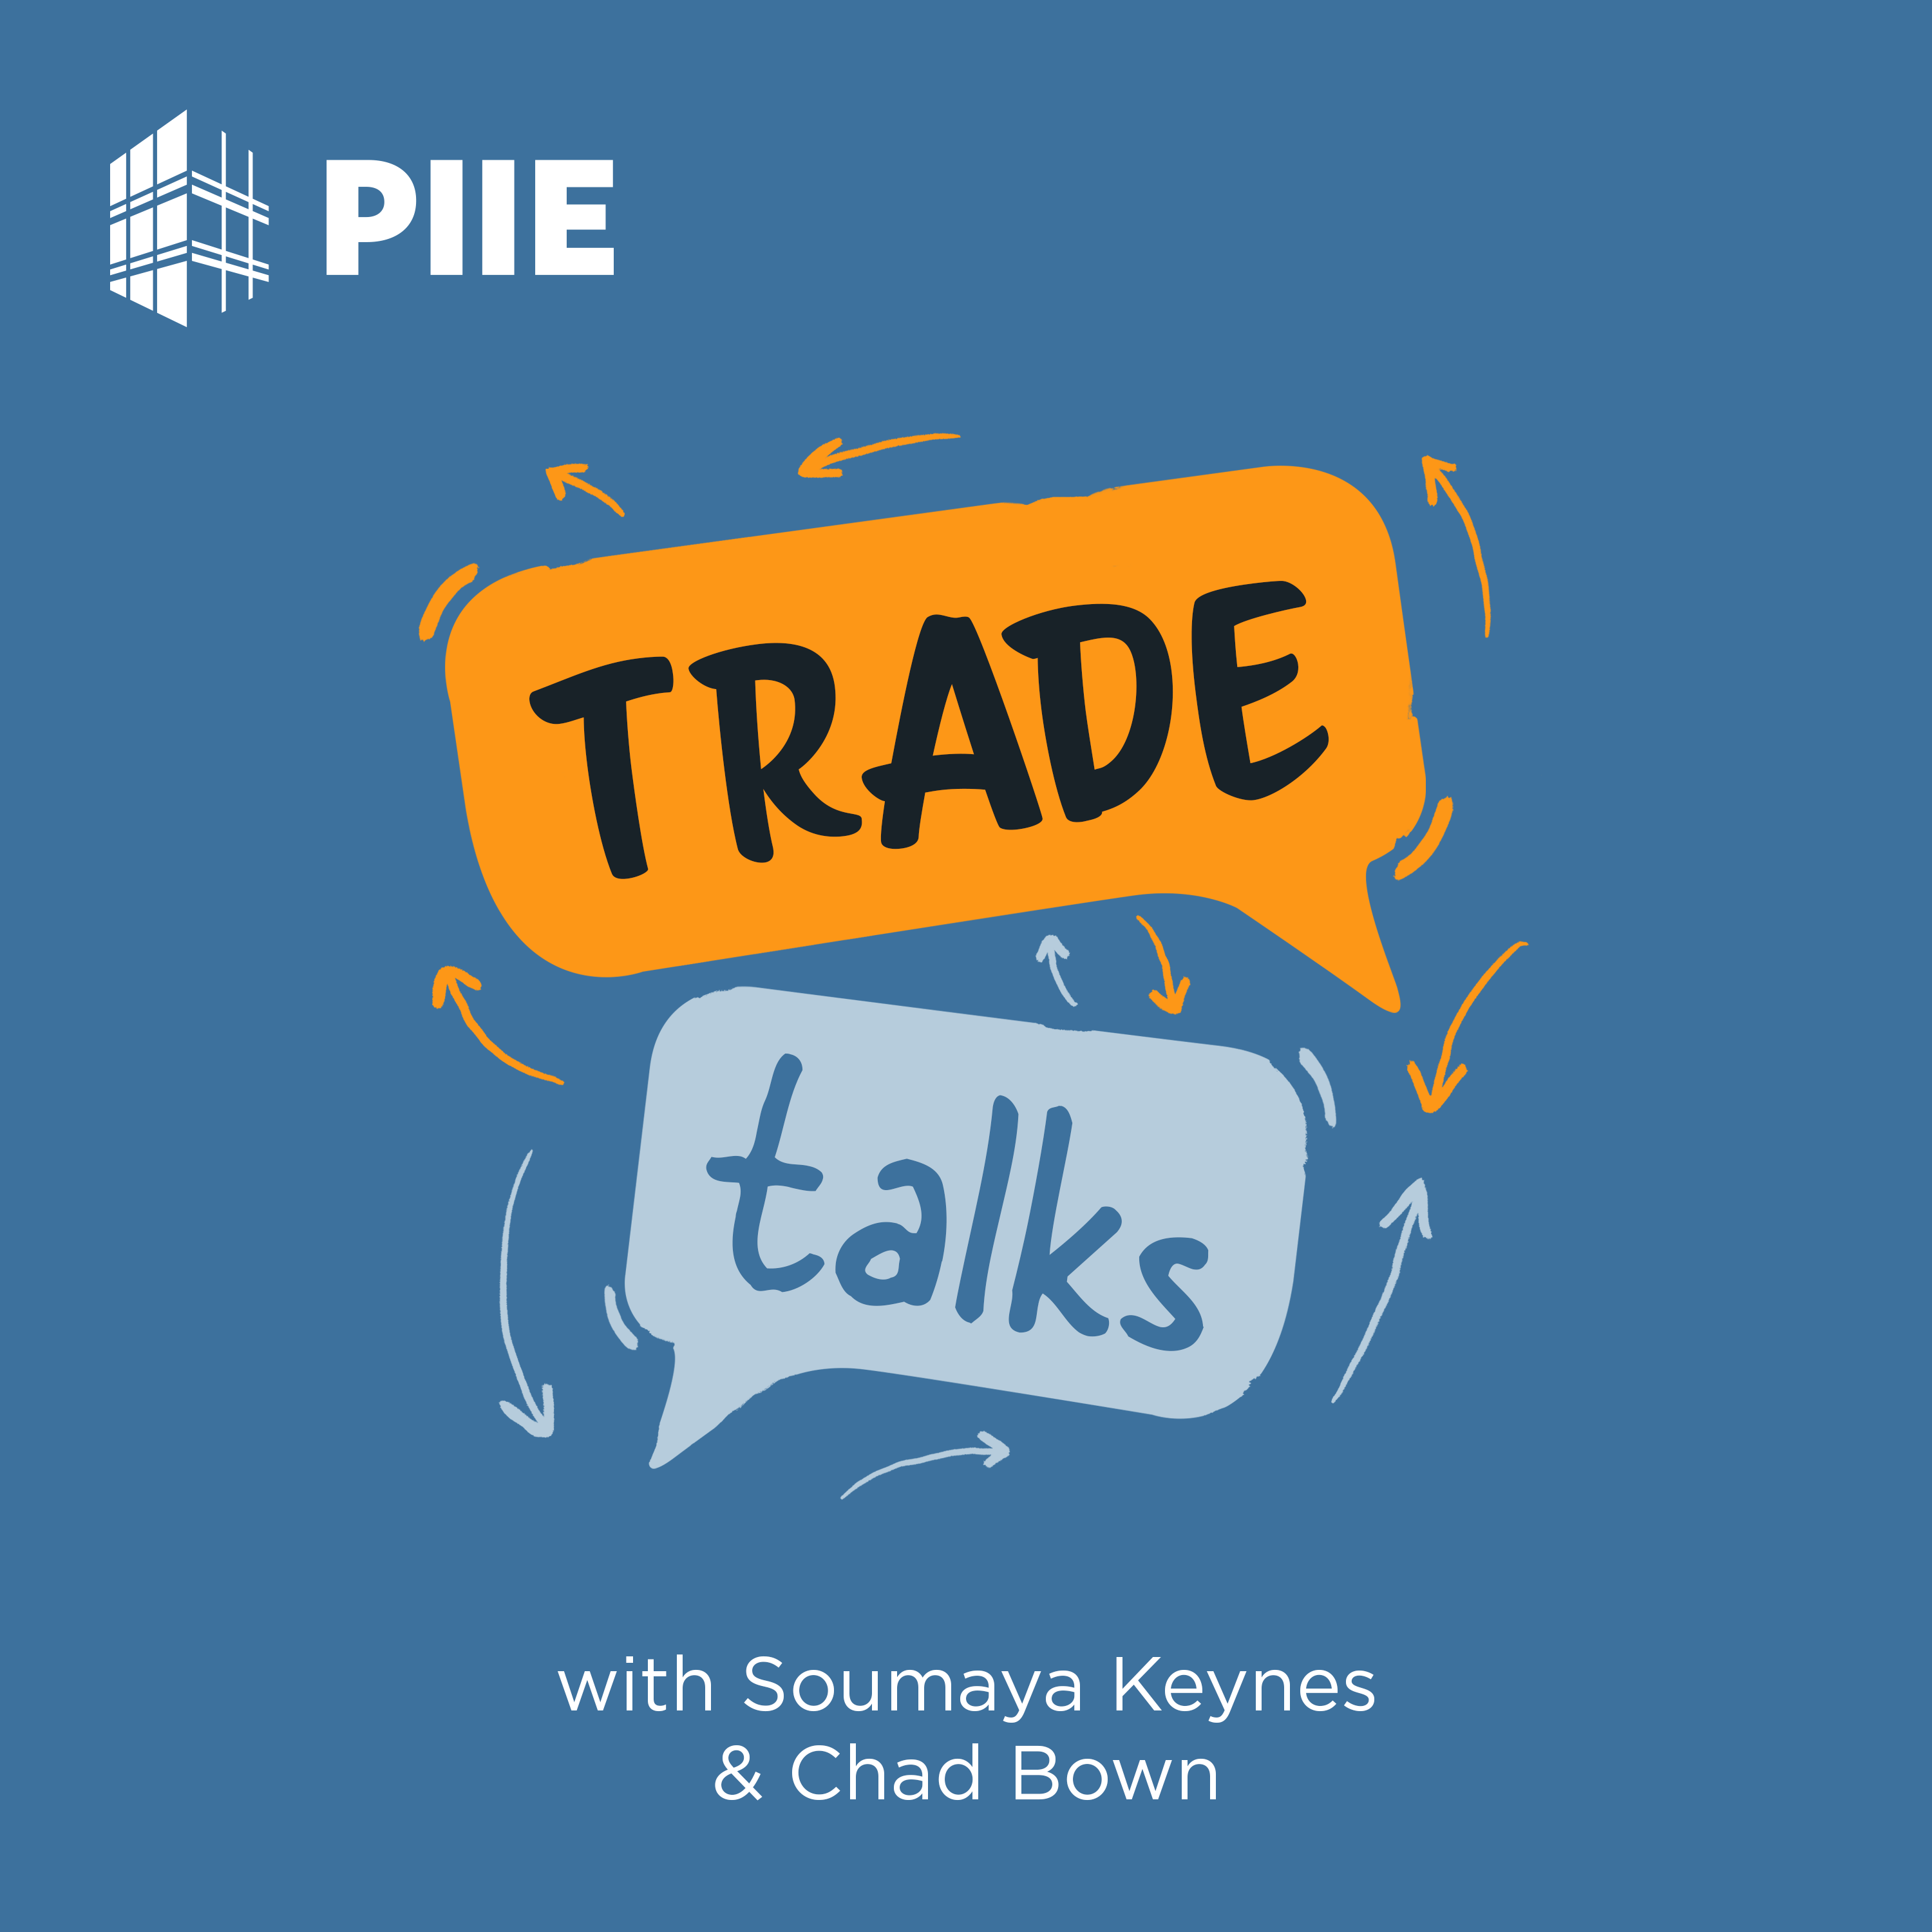 Trade Talks Piie By Peterson Institute For International Economics